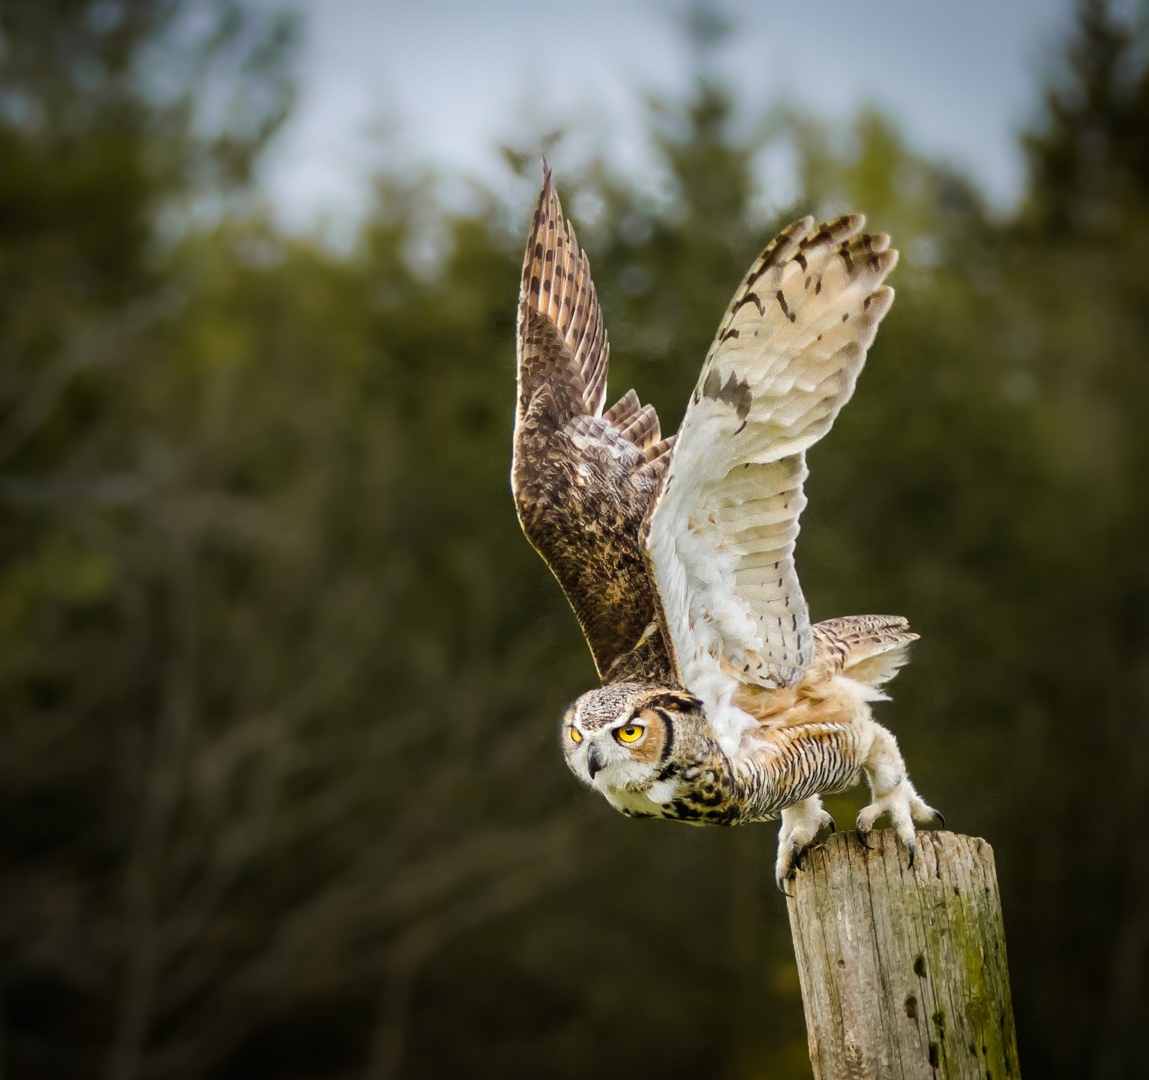 Owl Taking off from Perch